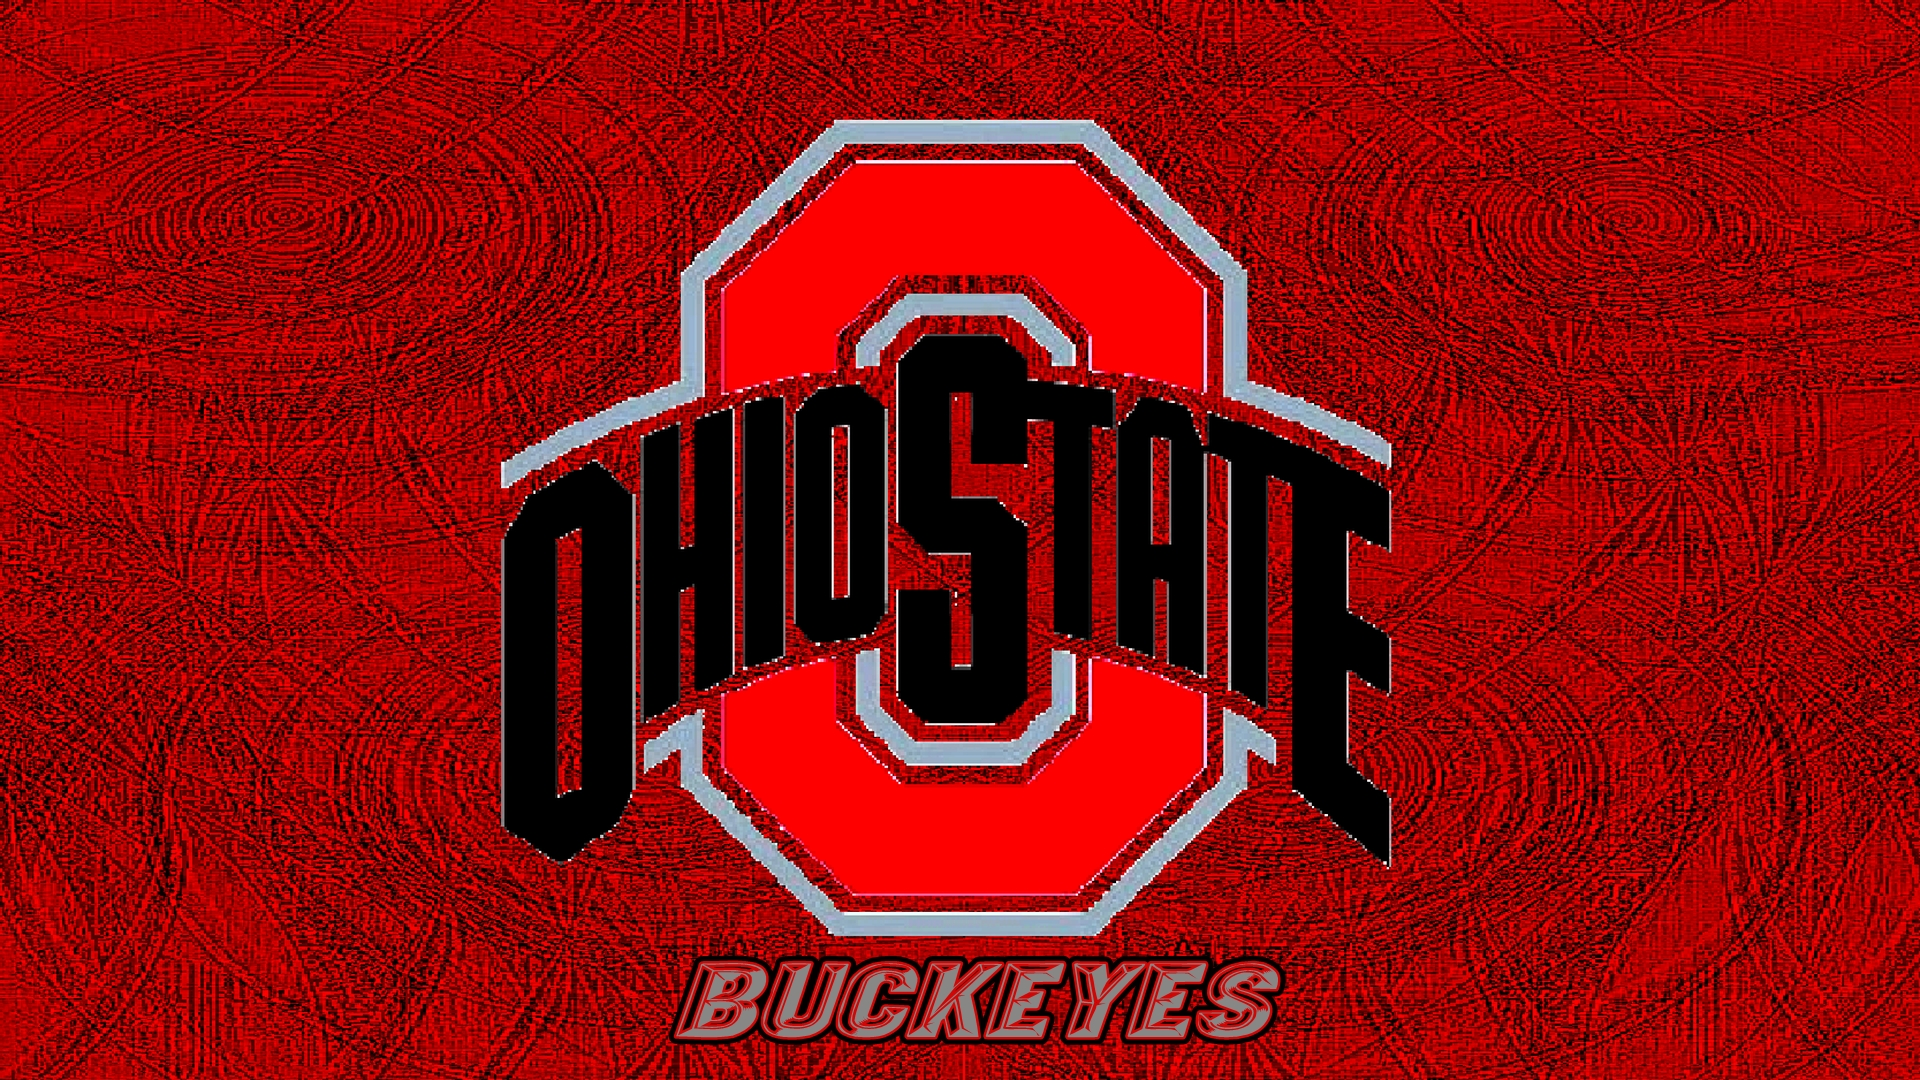 ohio state buckeyes images athletic logo #8 hd wallpaper and